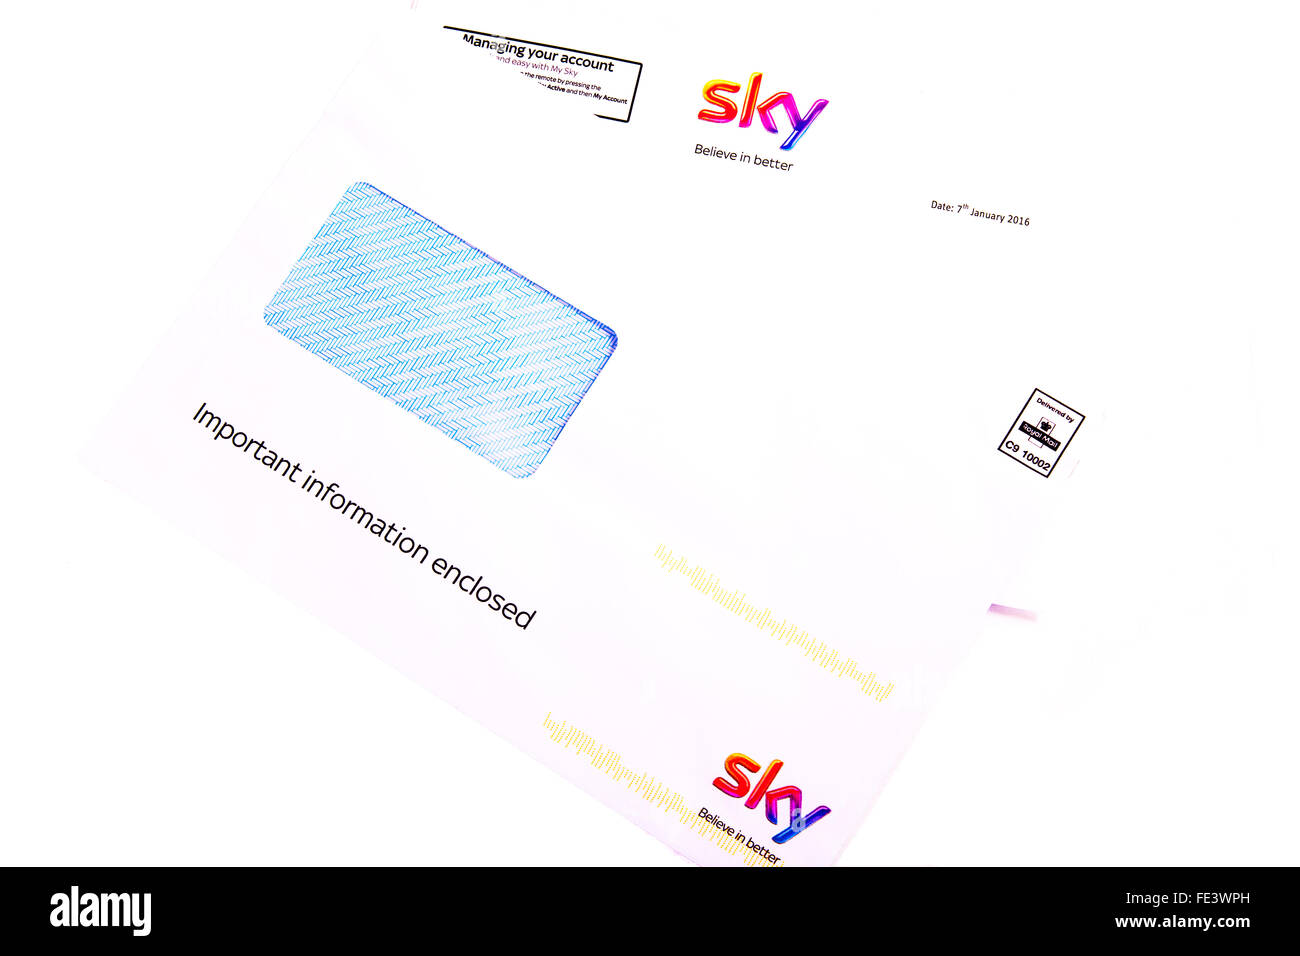 Sky TV letter managing your account important information enclosed cut out cutout white background isolated - Stock Image